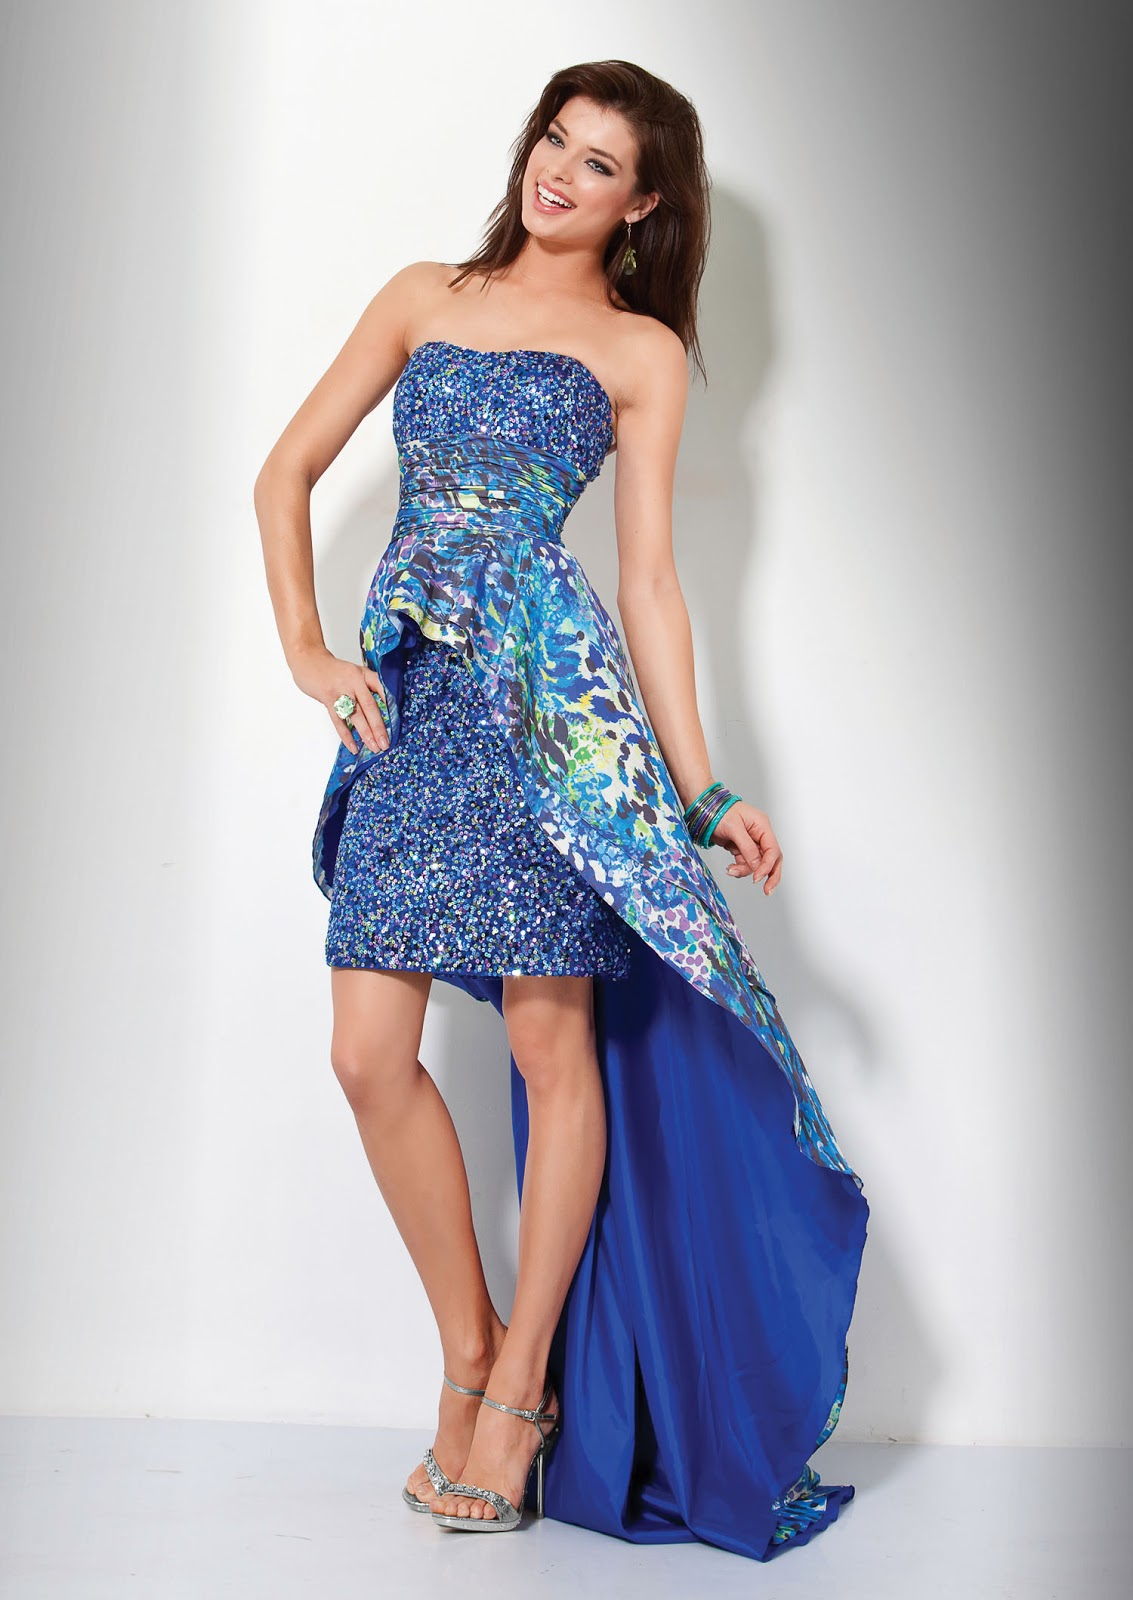 Wonderful Women Best Evening Dress Collection 2013